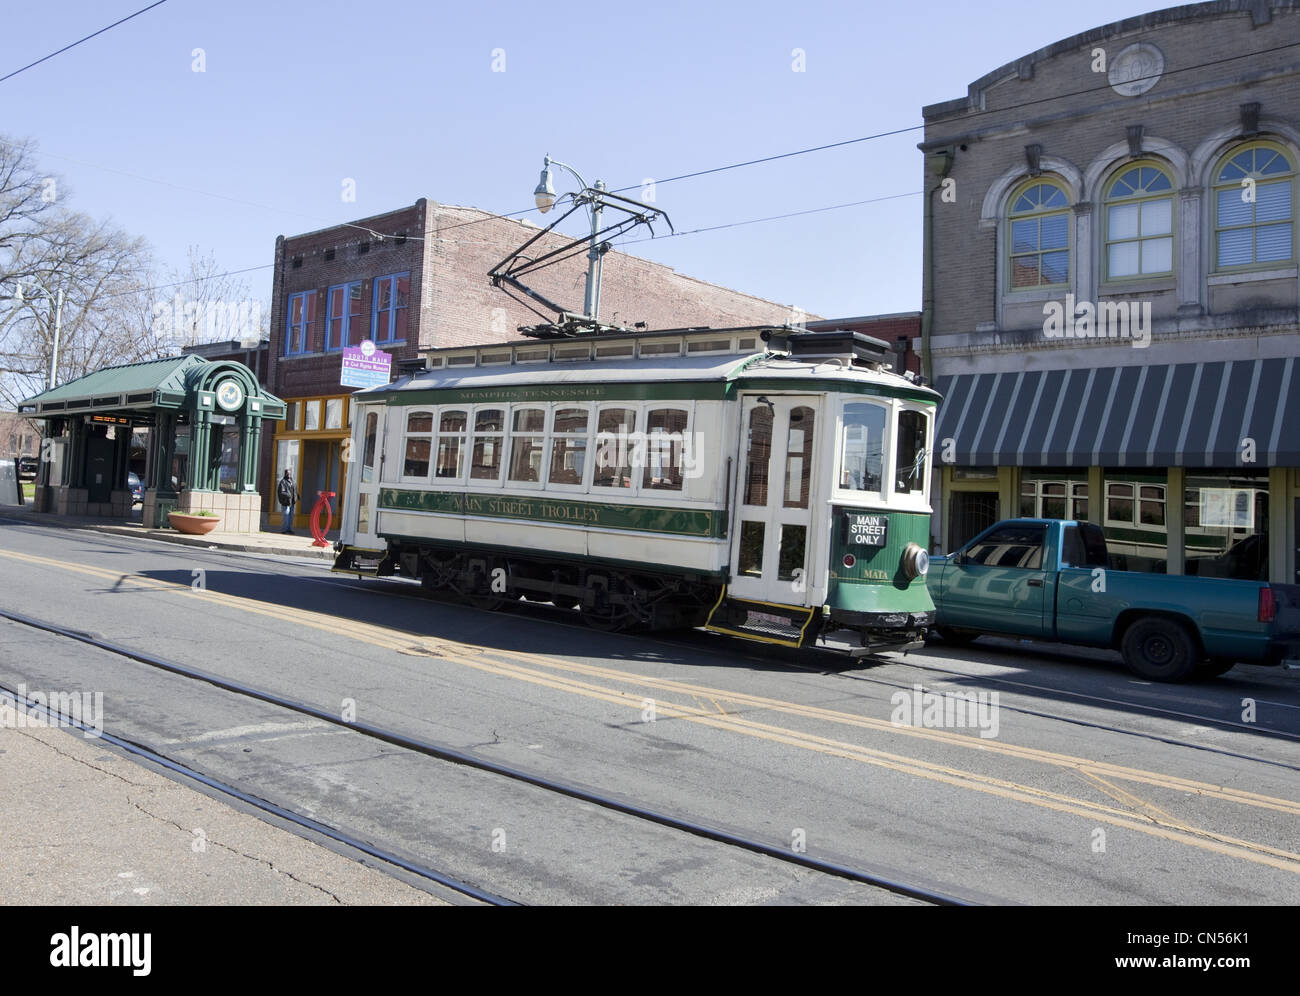 Vintage Main Street Trolley car in Memphis, Tennessee - Stock Image